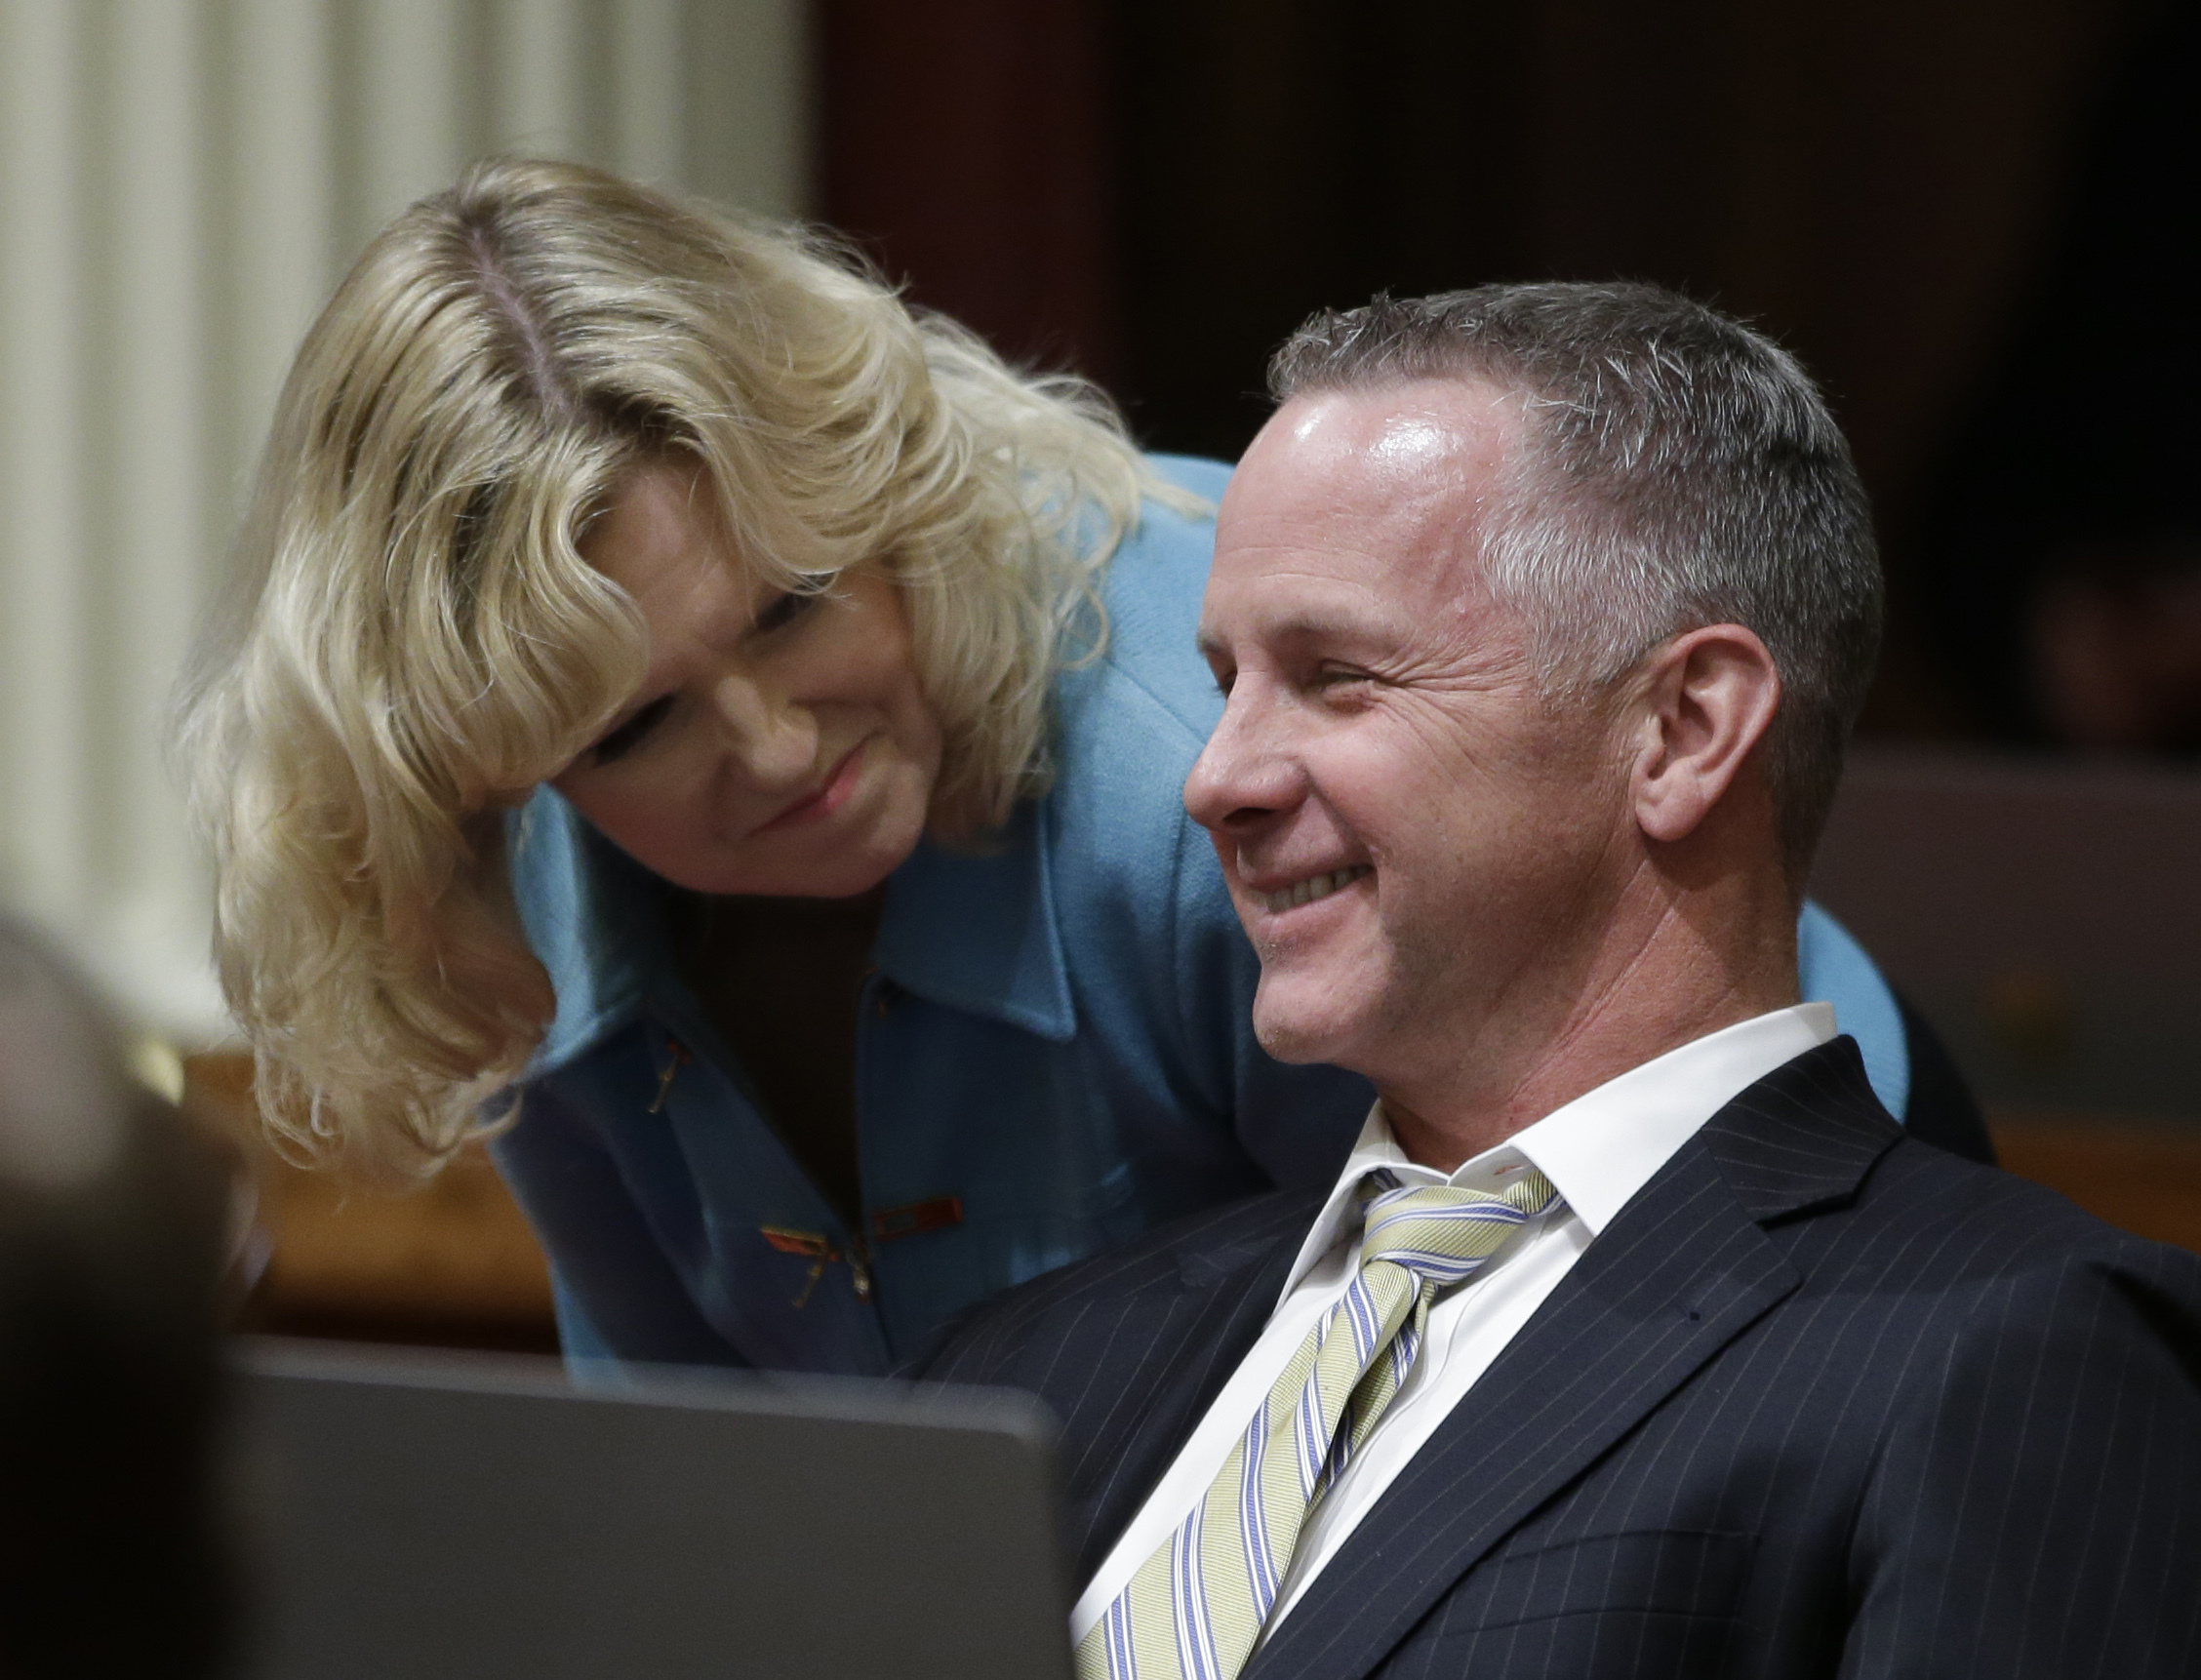 California Road Repairs State Sen. Anthony Canella, R-Ceres, smiles as he talks with Sen. Cathleen Galgiani, D-Stockton, as lawmakers debate a transportation bill, that would increase the state's gas and vehicle taxes $5 billion-a-year- to pay for major road repairs, Thursday, April 6, 2017, in Sacramento, Calif. Cannella joined Democrats in voting for the bill, SB1, that was approved and sent to the Assembly. (AP Photo/Rich Pedroncelli)